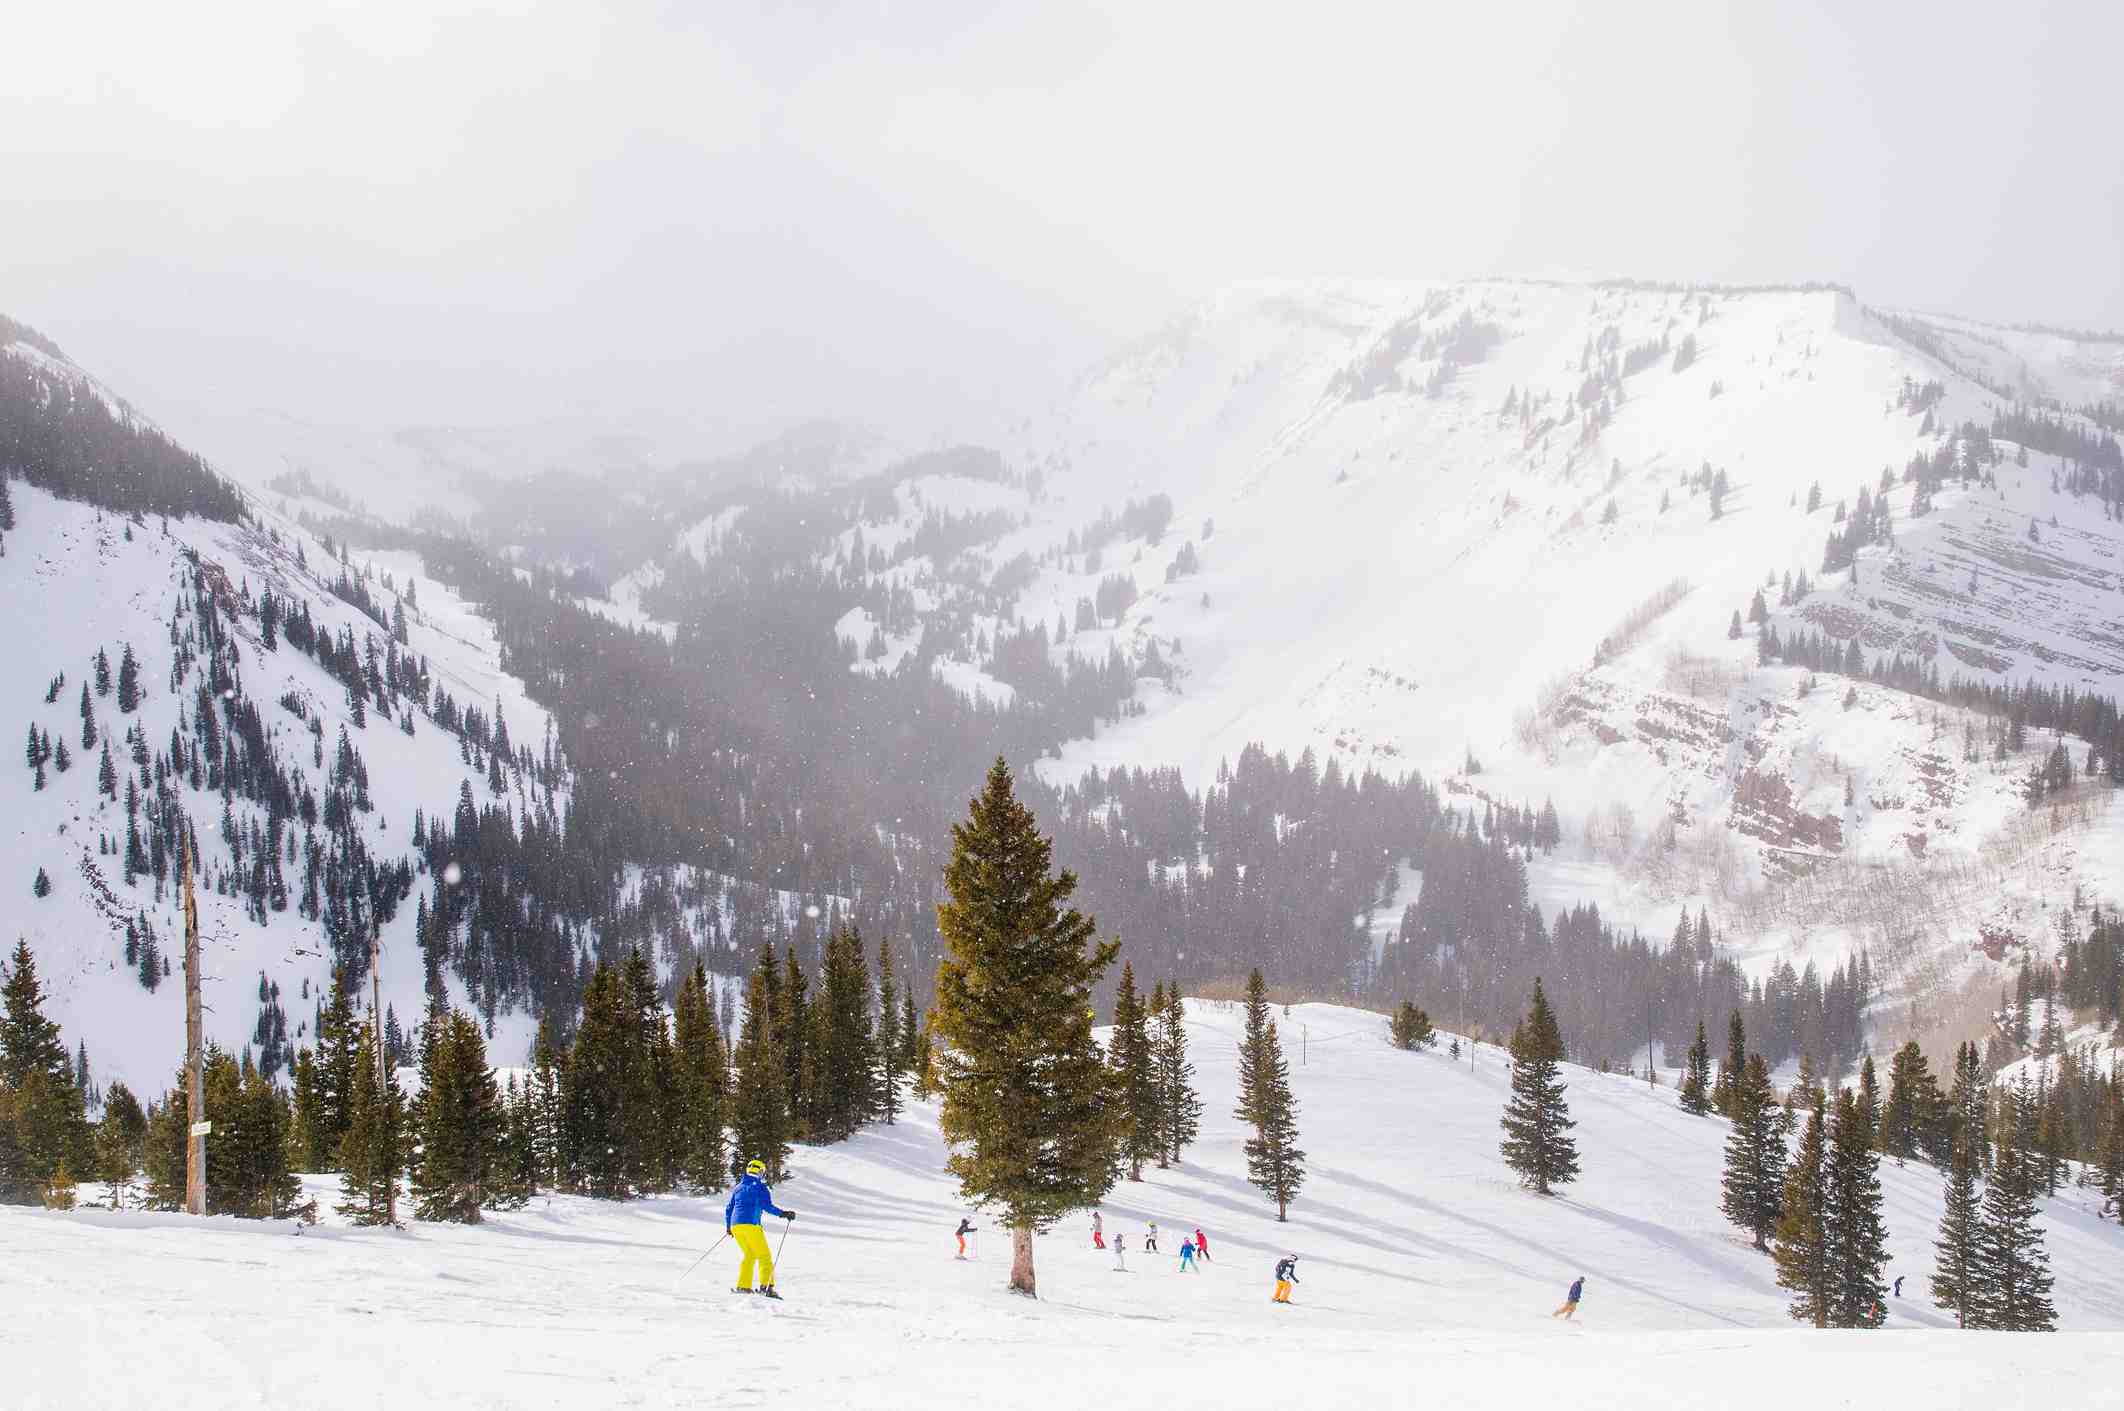 Skiers and snowboarders enjoying the slopes of Snowmass